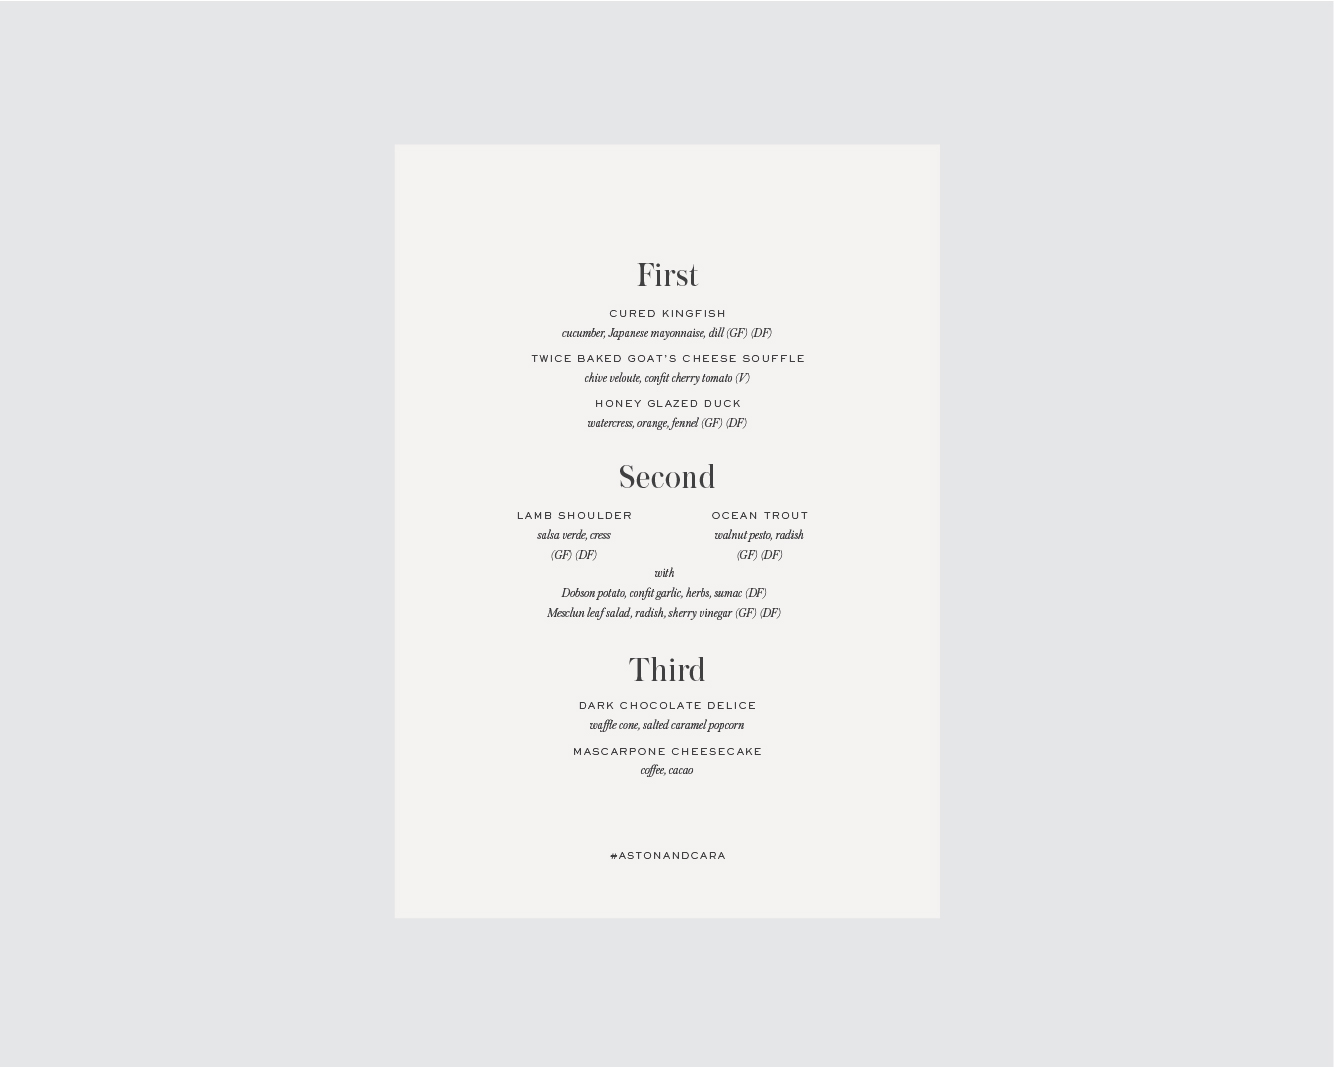 Menu - Single sided, or back